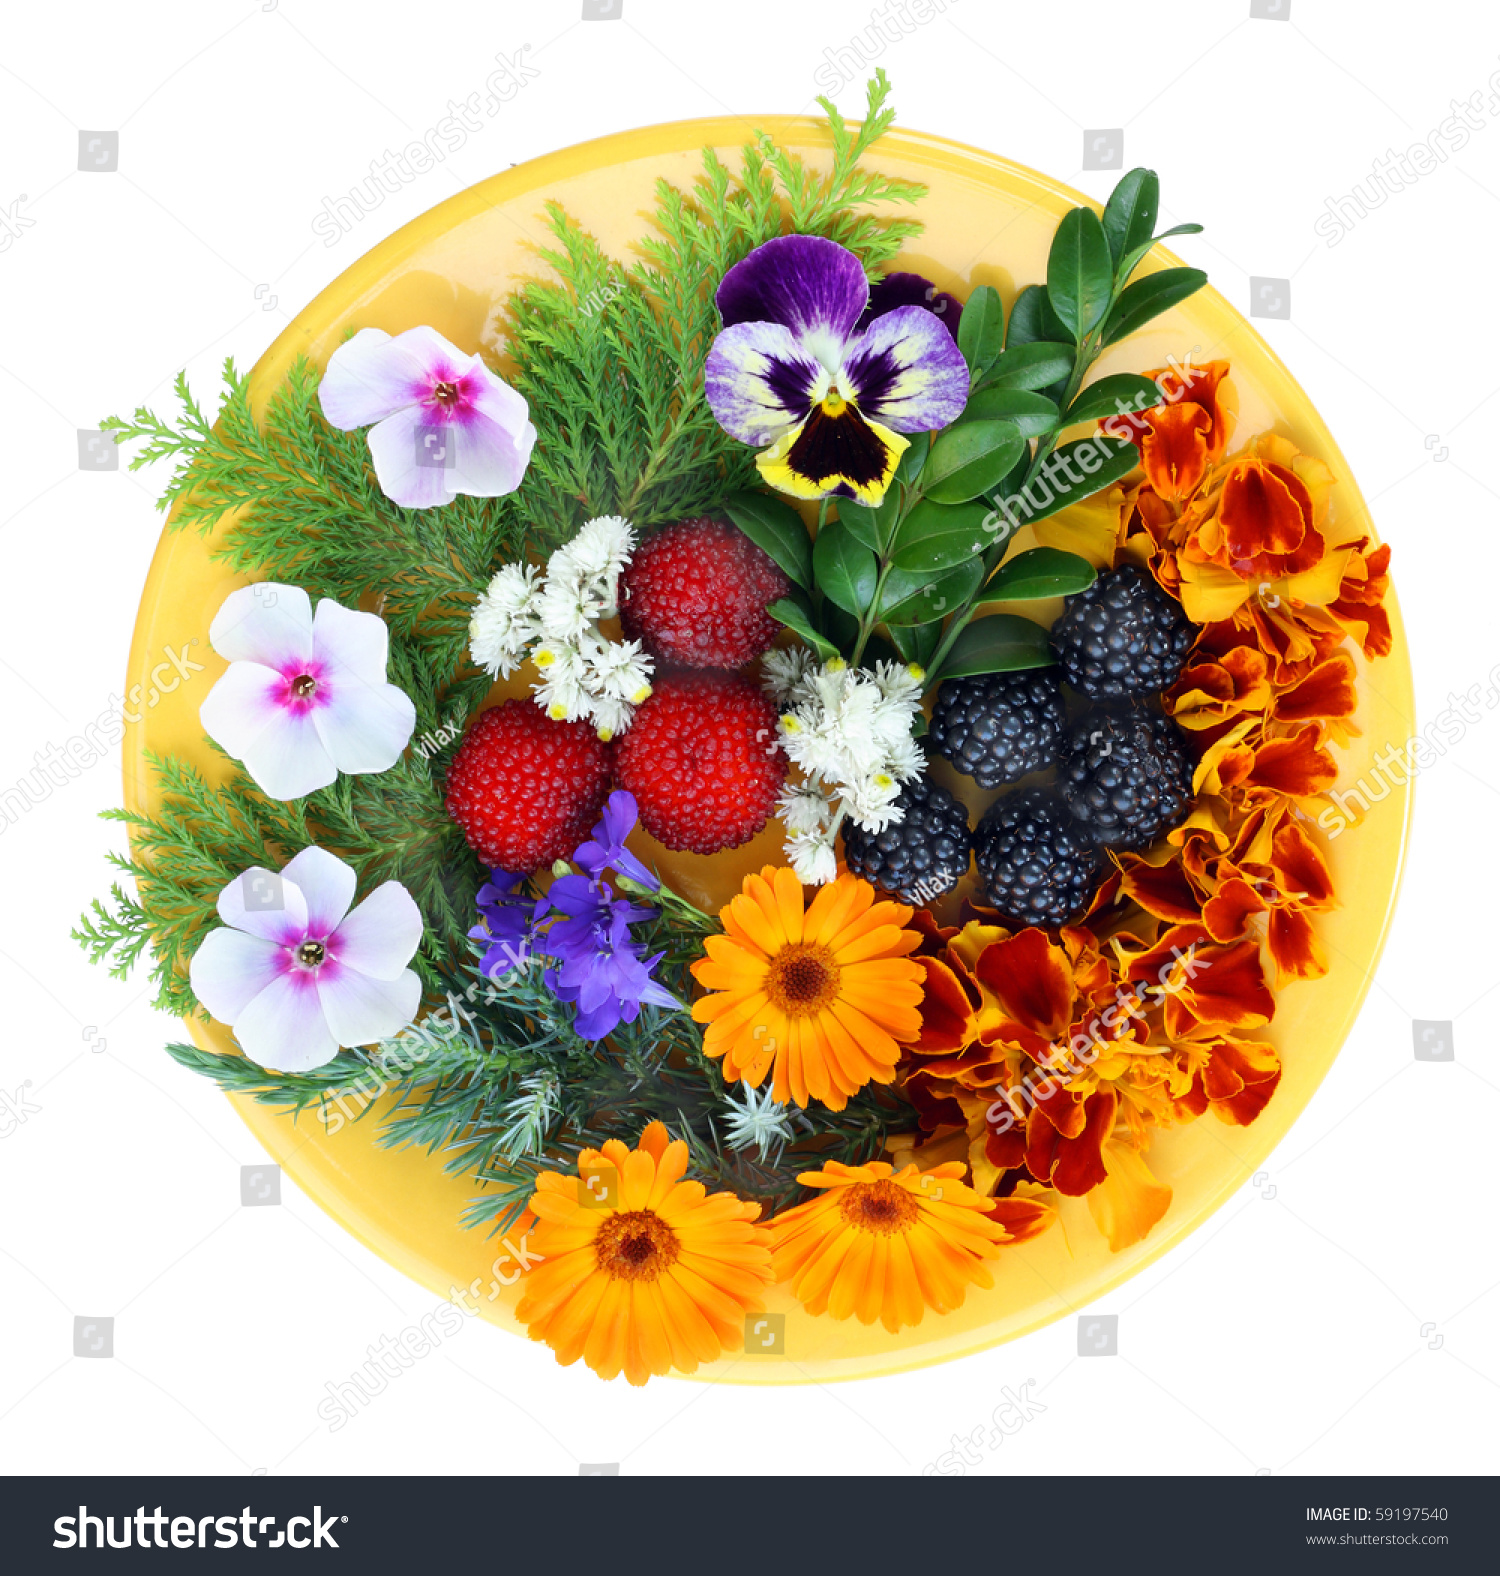 August flowers berries on yellow plate stock photo edit now august flowers and berries on a yellow plate isolated on white mightylinksfo